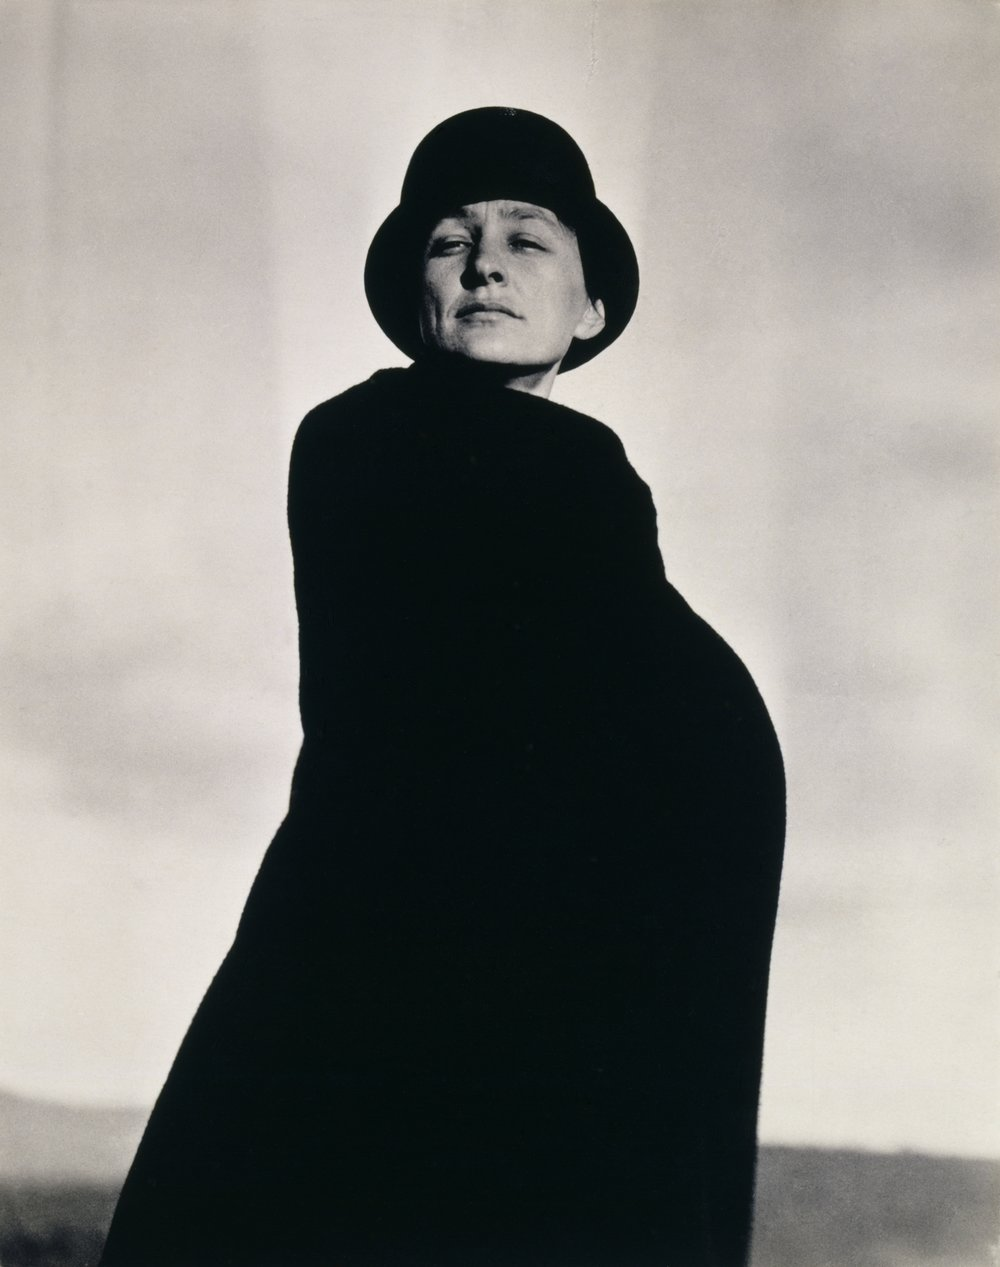 A portrait of Georgia O'Keeffe by Alfred Stieglitz